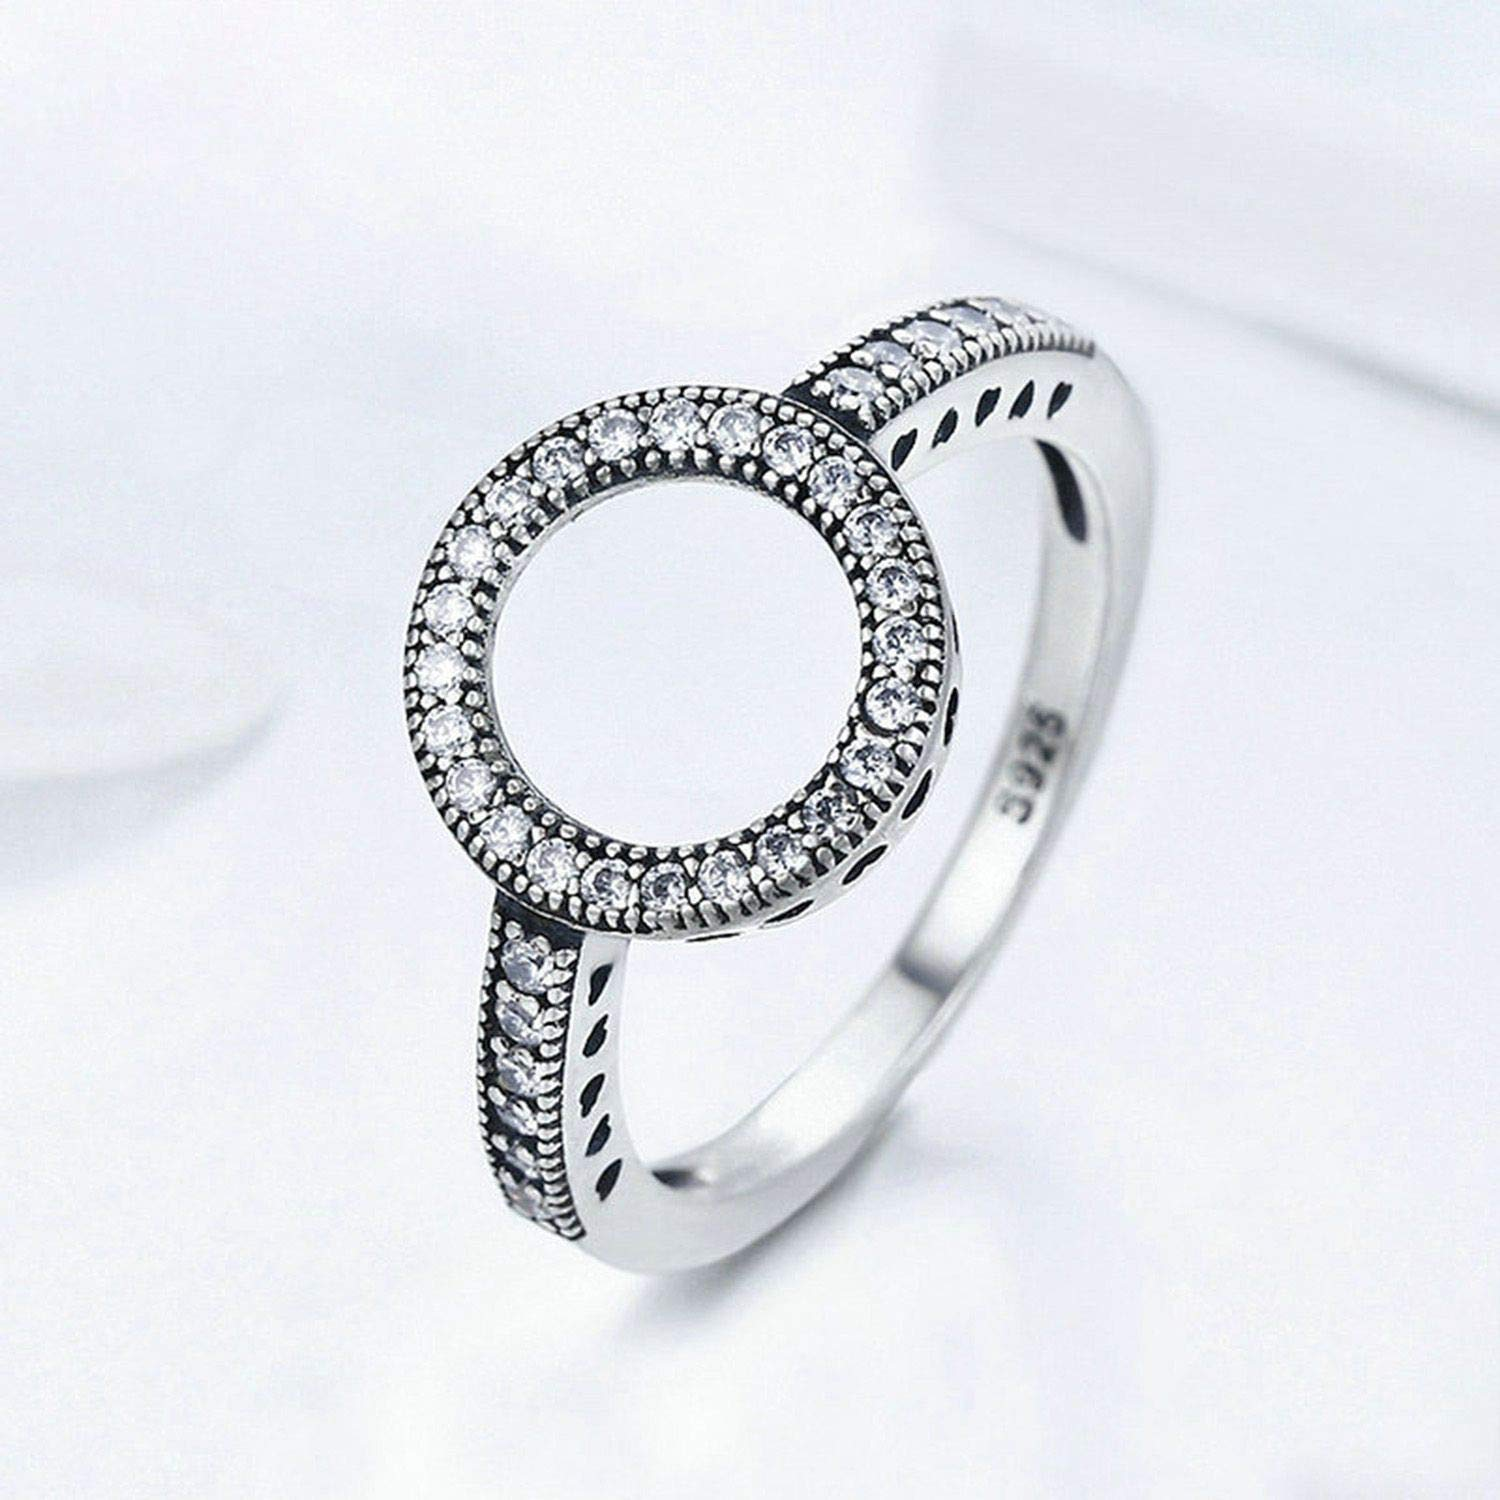 juan 9 Ring 2019 Real 925 Sterling Silver Lucky Circle Finger Rings for Women Fashion Jewelry Gift,8,White